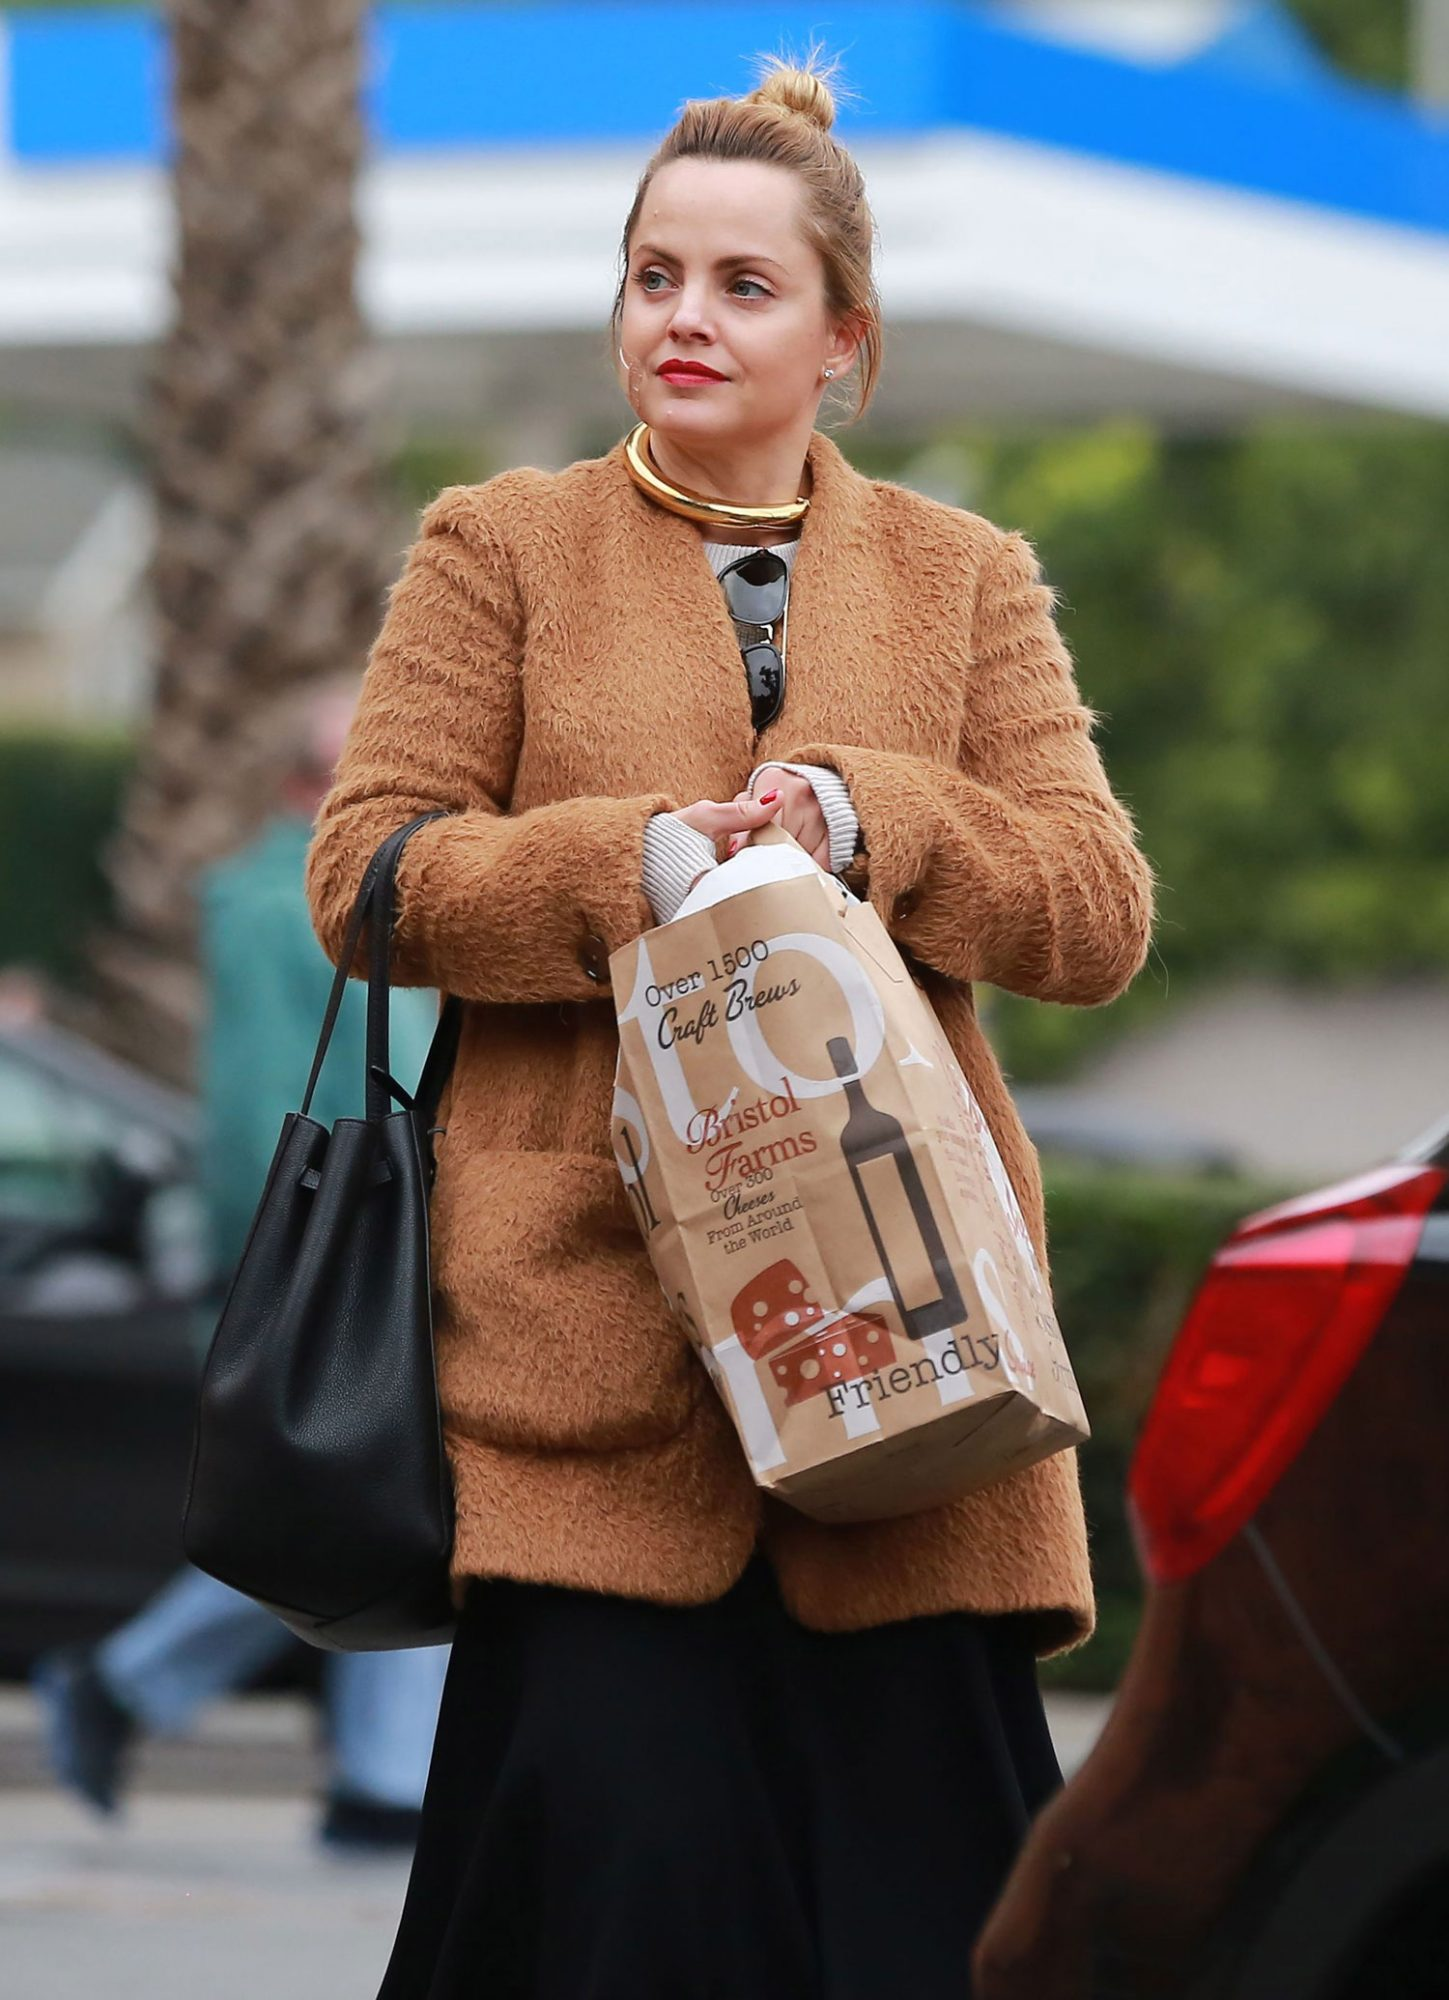 *EXCLUSIVE* Mena Suvari leaves Bristol Farms with a bandage on her Cheek